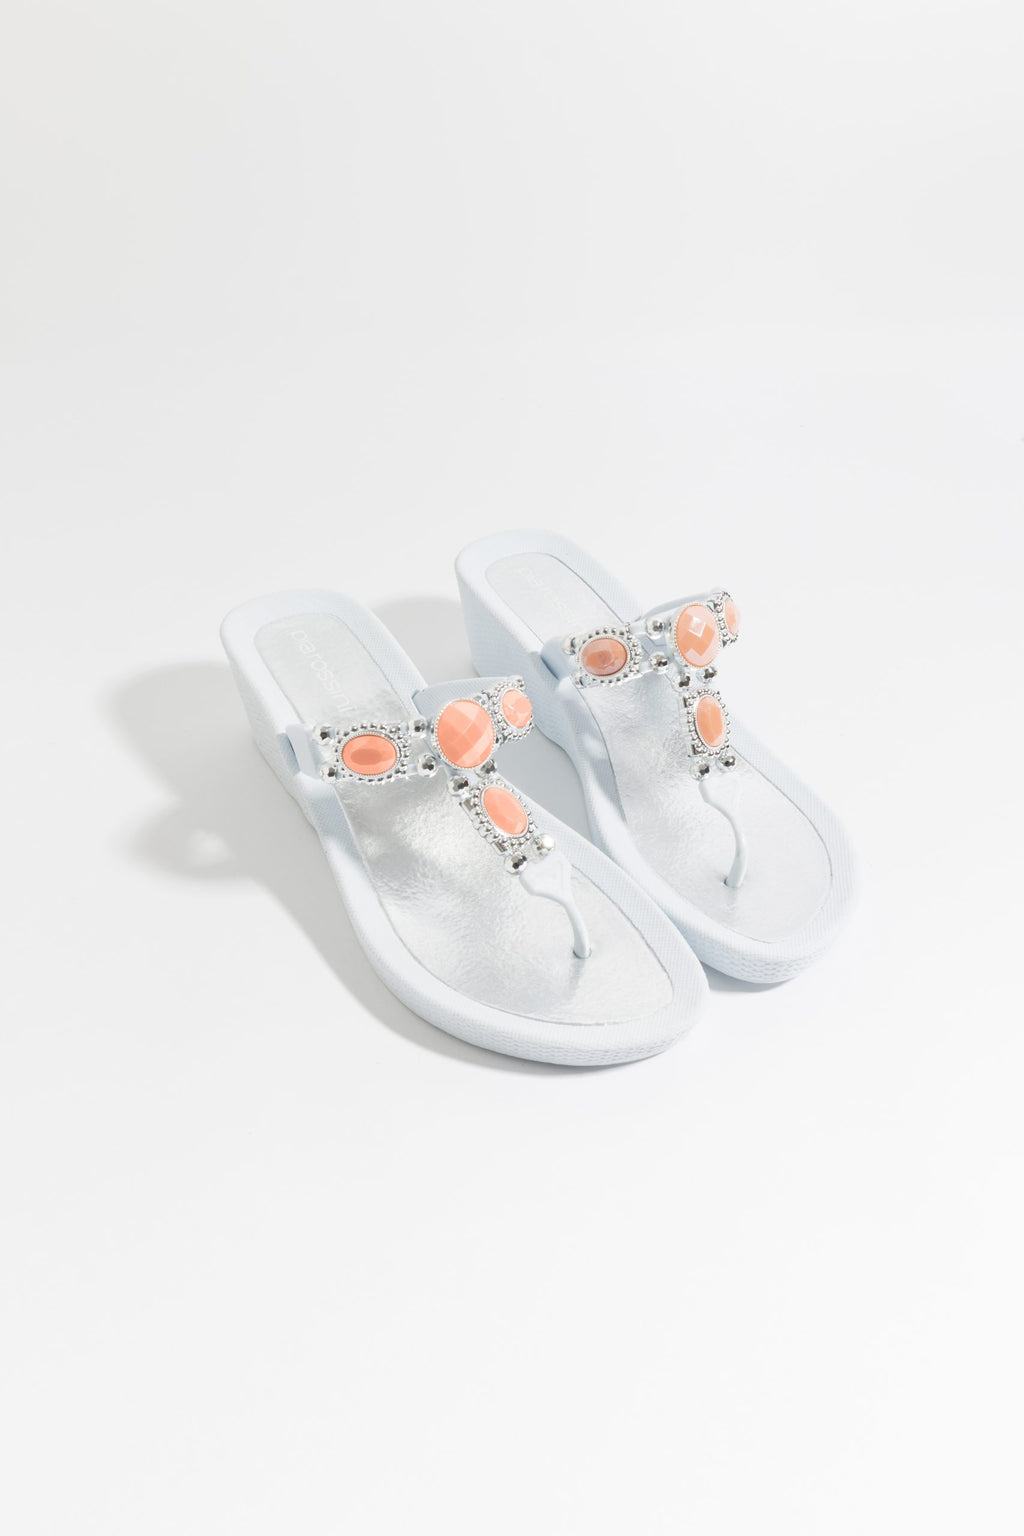 Appollo Shoe White/Coral